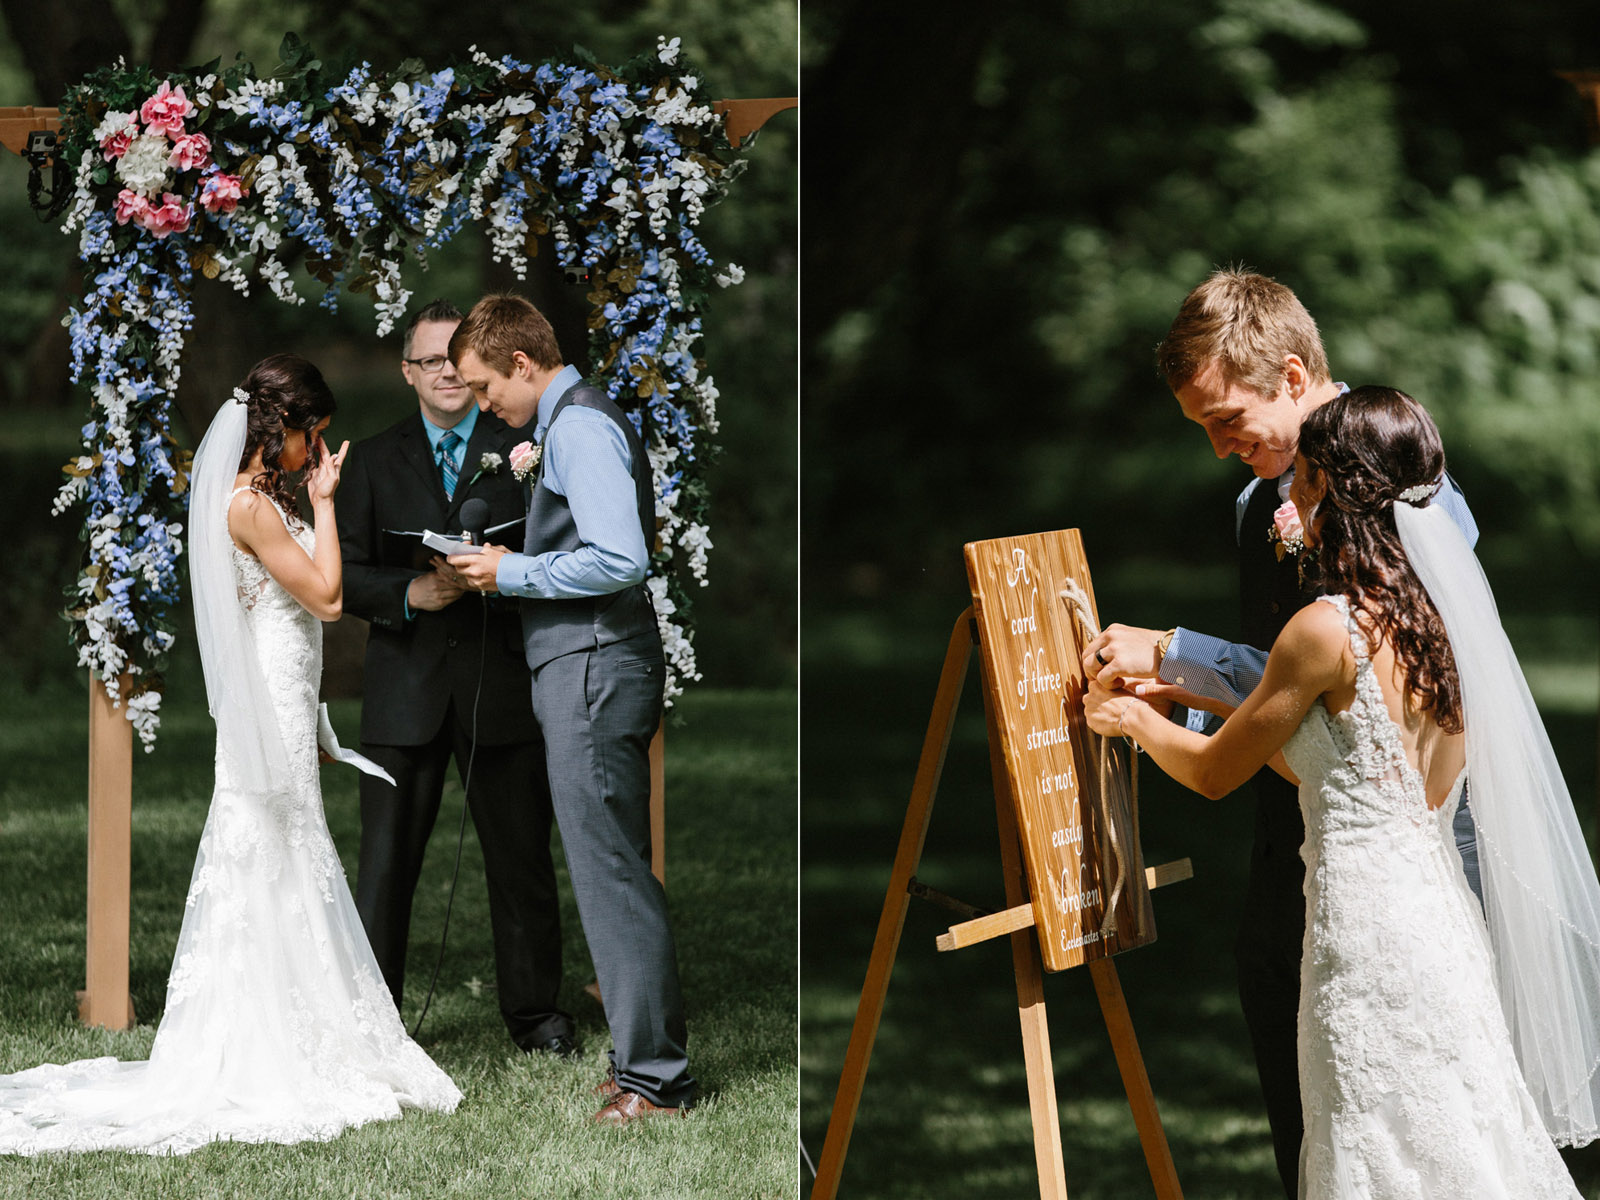 Outdoor_Wedding_SiouxFalls_MaryJoWegnerArboretum_Photographer_Calli&Jon_086.jpg